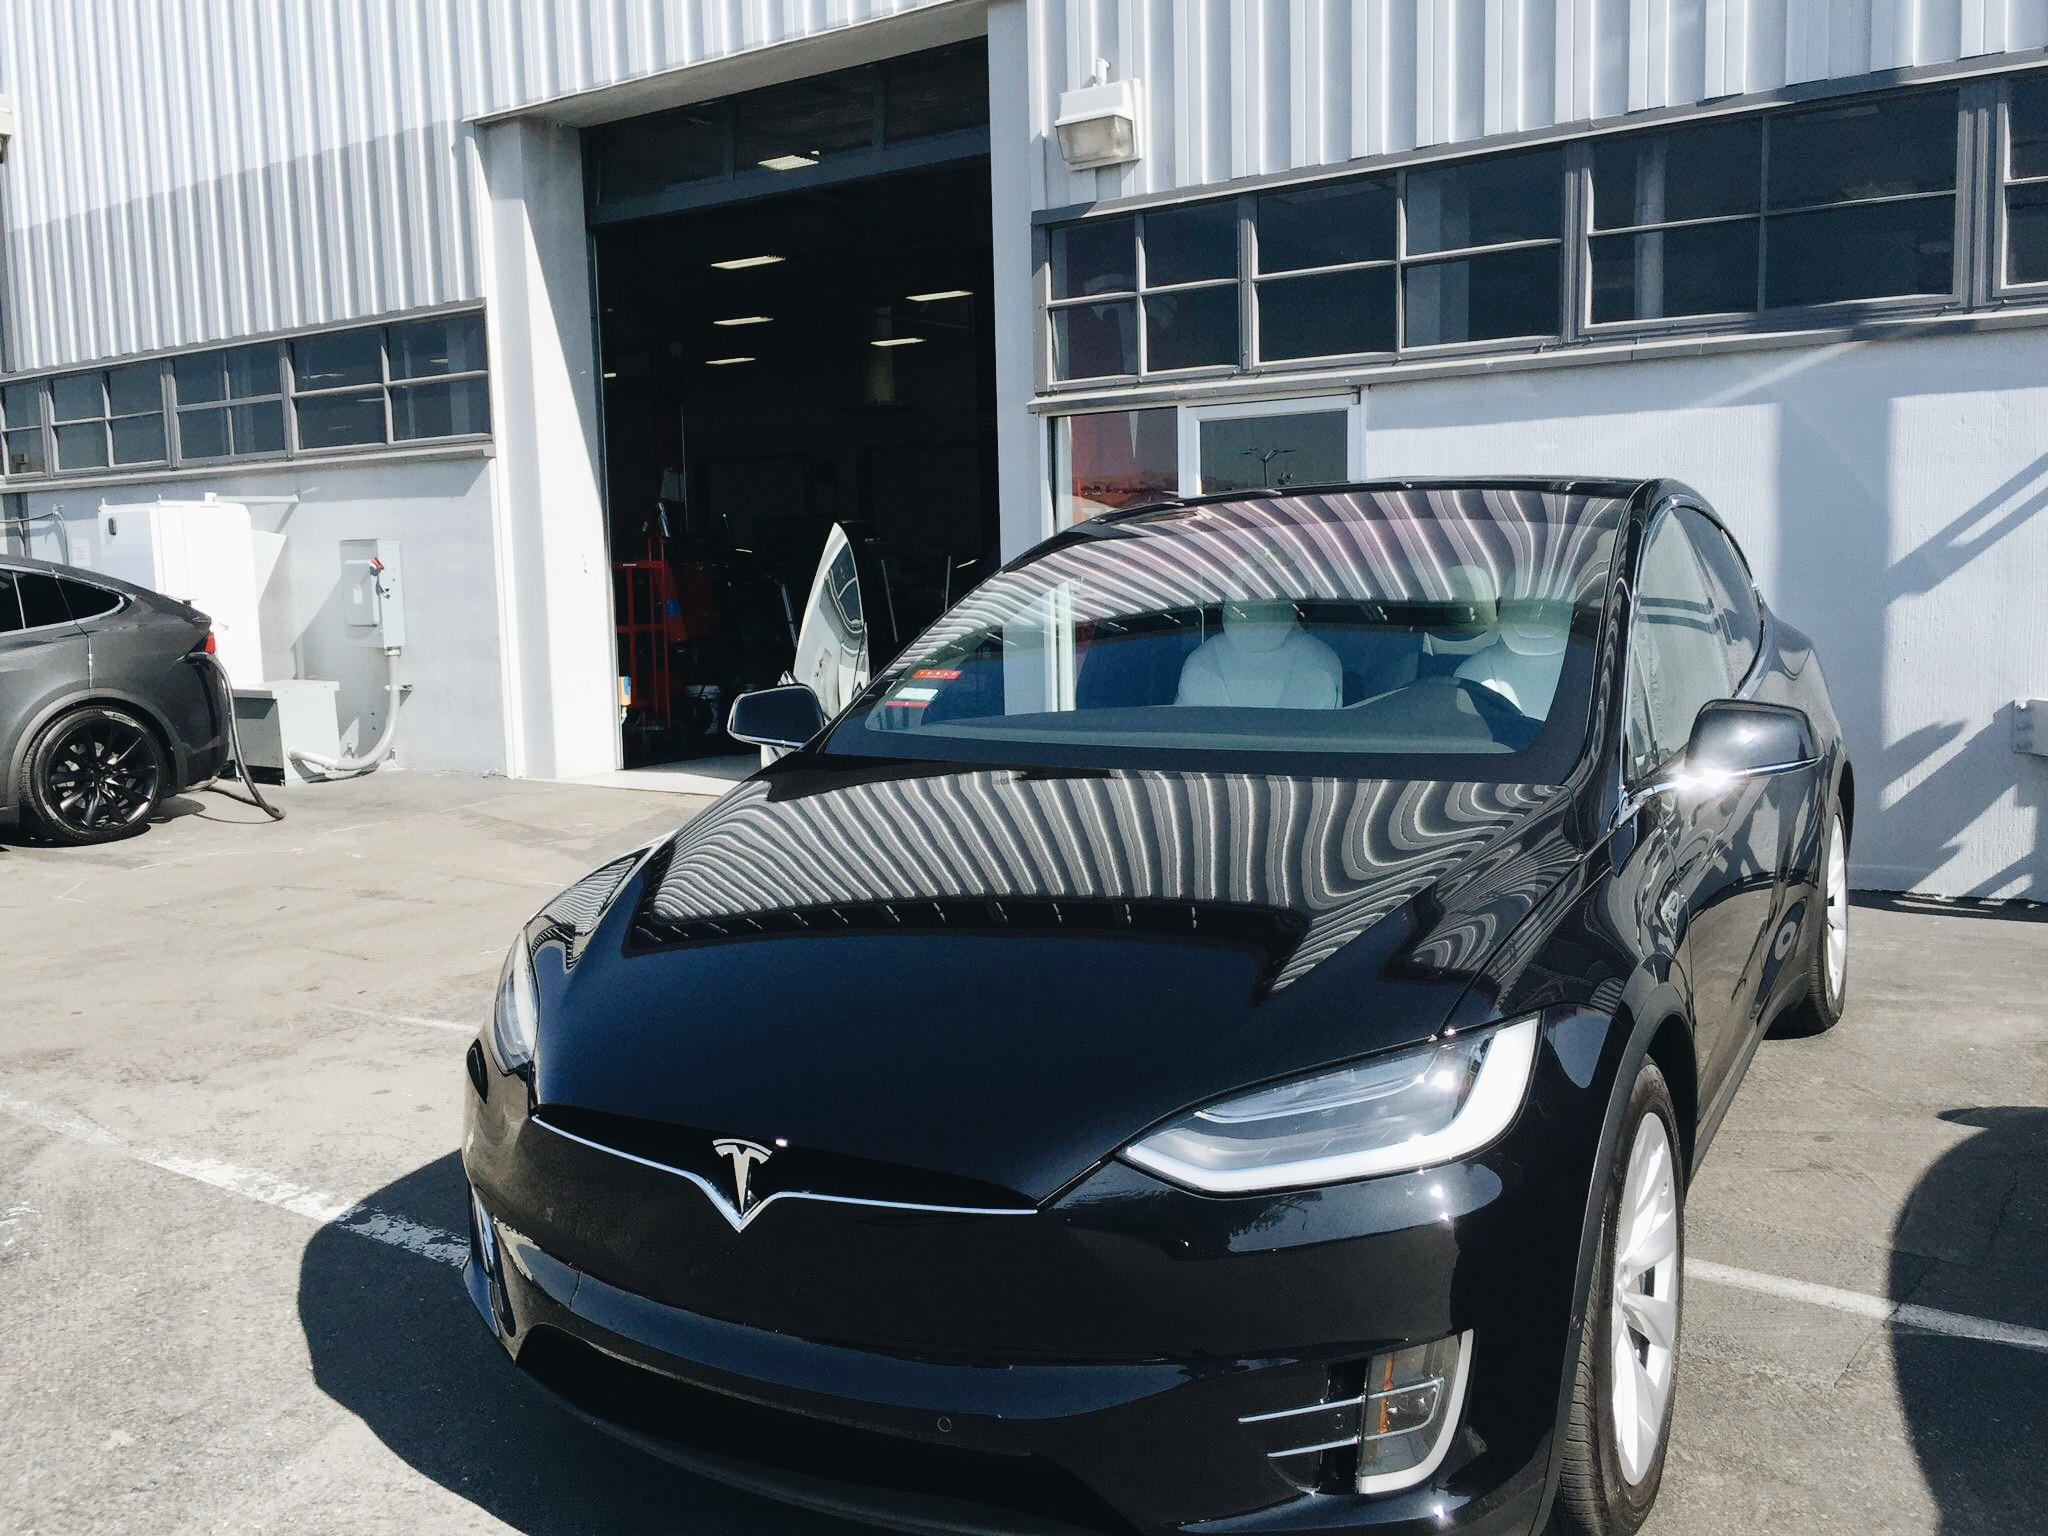 Photo: Tesloop - Picking up Deuxy from Fremont in 2016